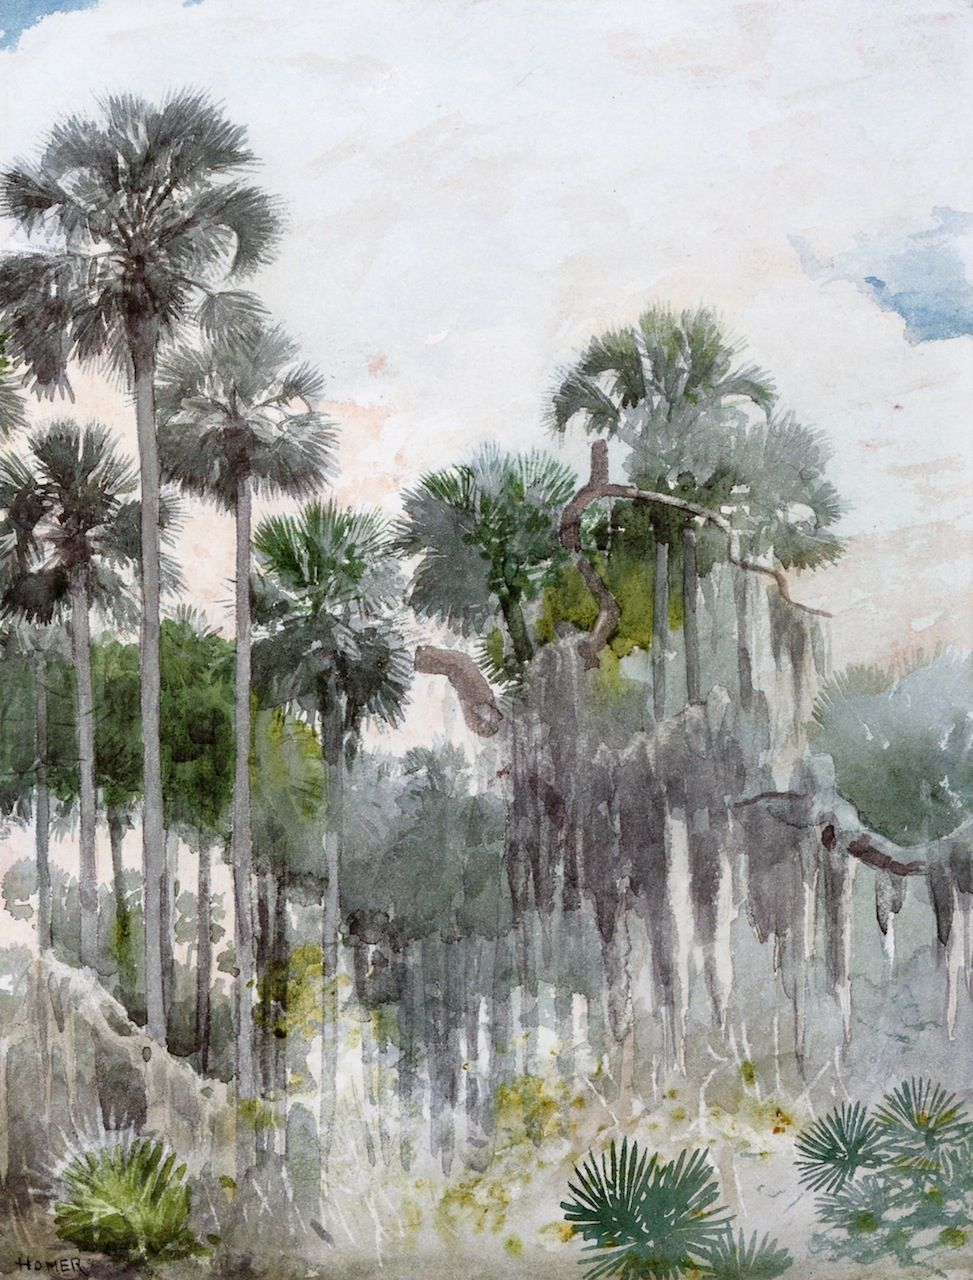 Watercolor artist magazine palm coast fl - Florida Jungle Winslow Homer 1886 Private Collection Painting Watercolor Height Cm In Width Cm In